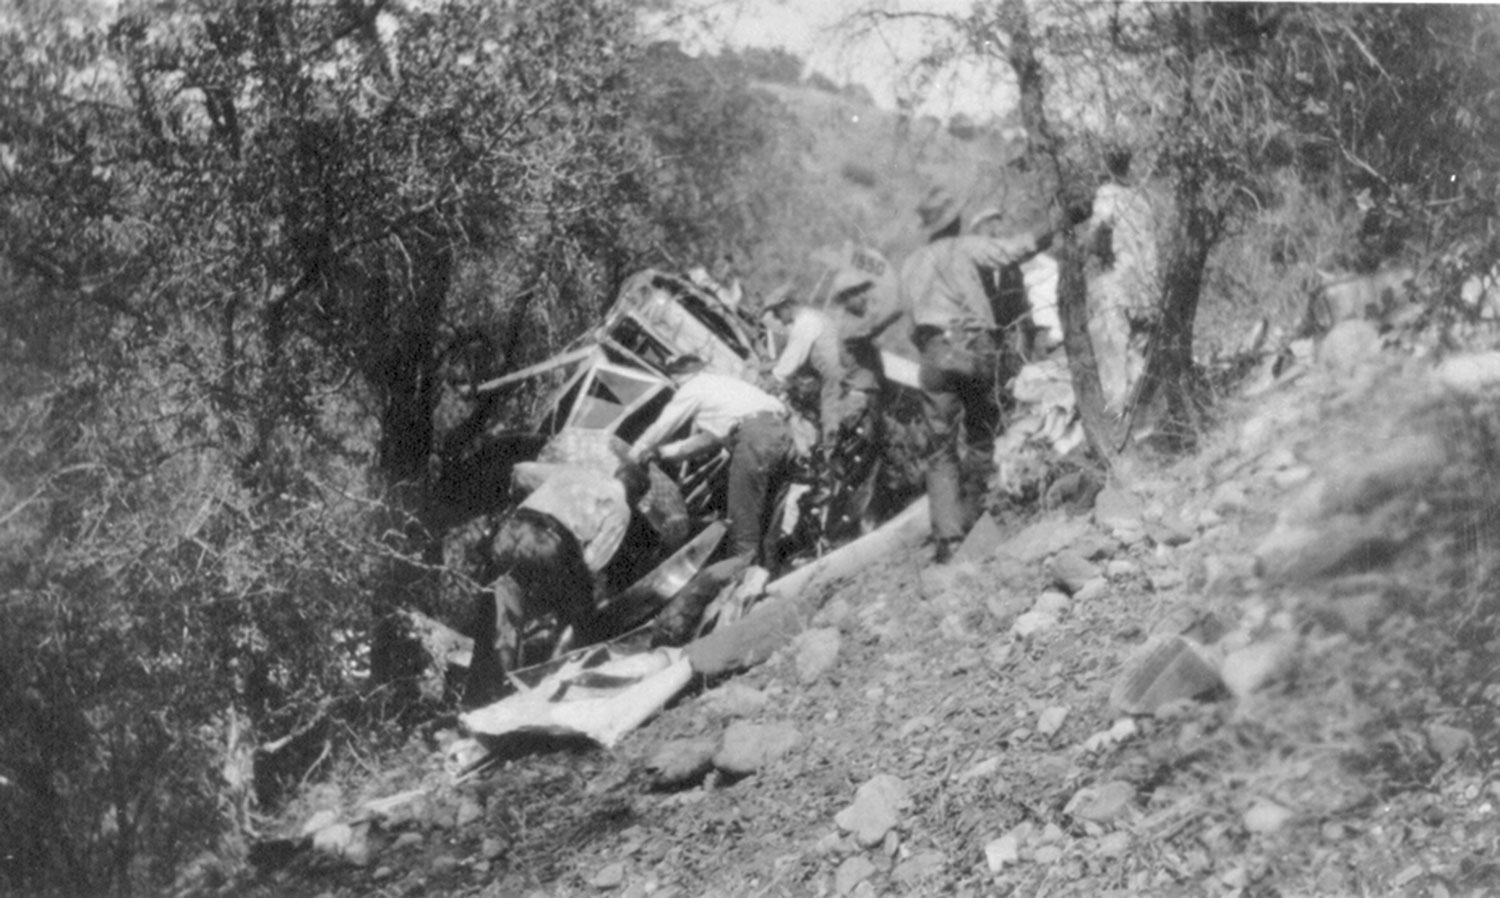 Crash site in Hellsgate Wilderness; Photo courtesy San Diego Air & Space Museum